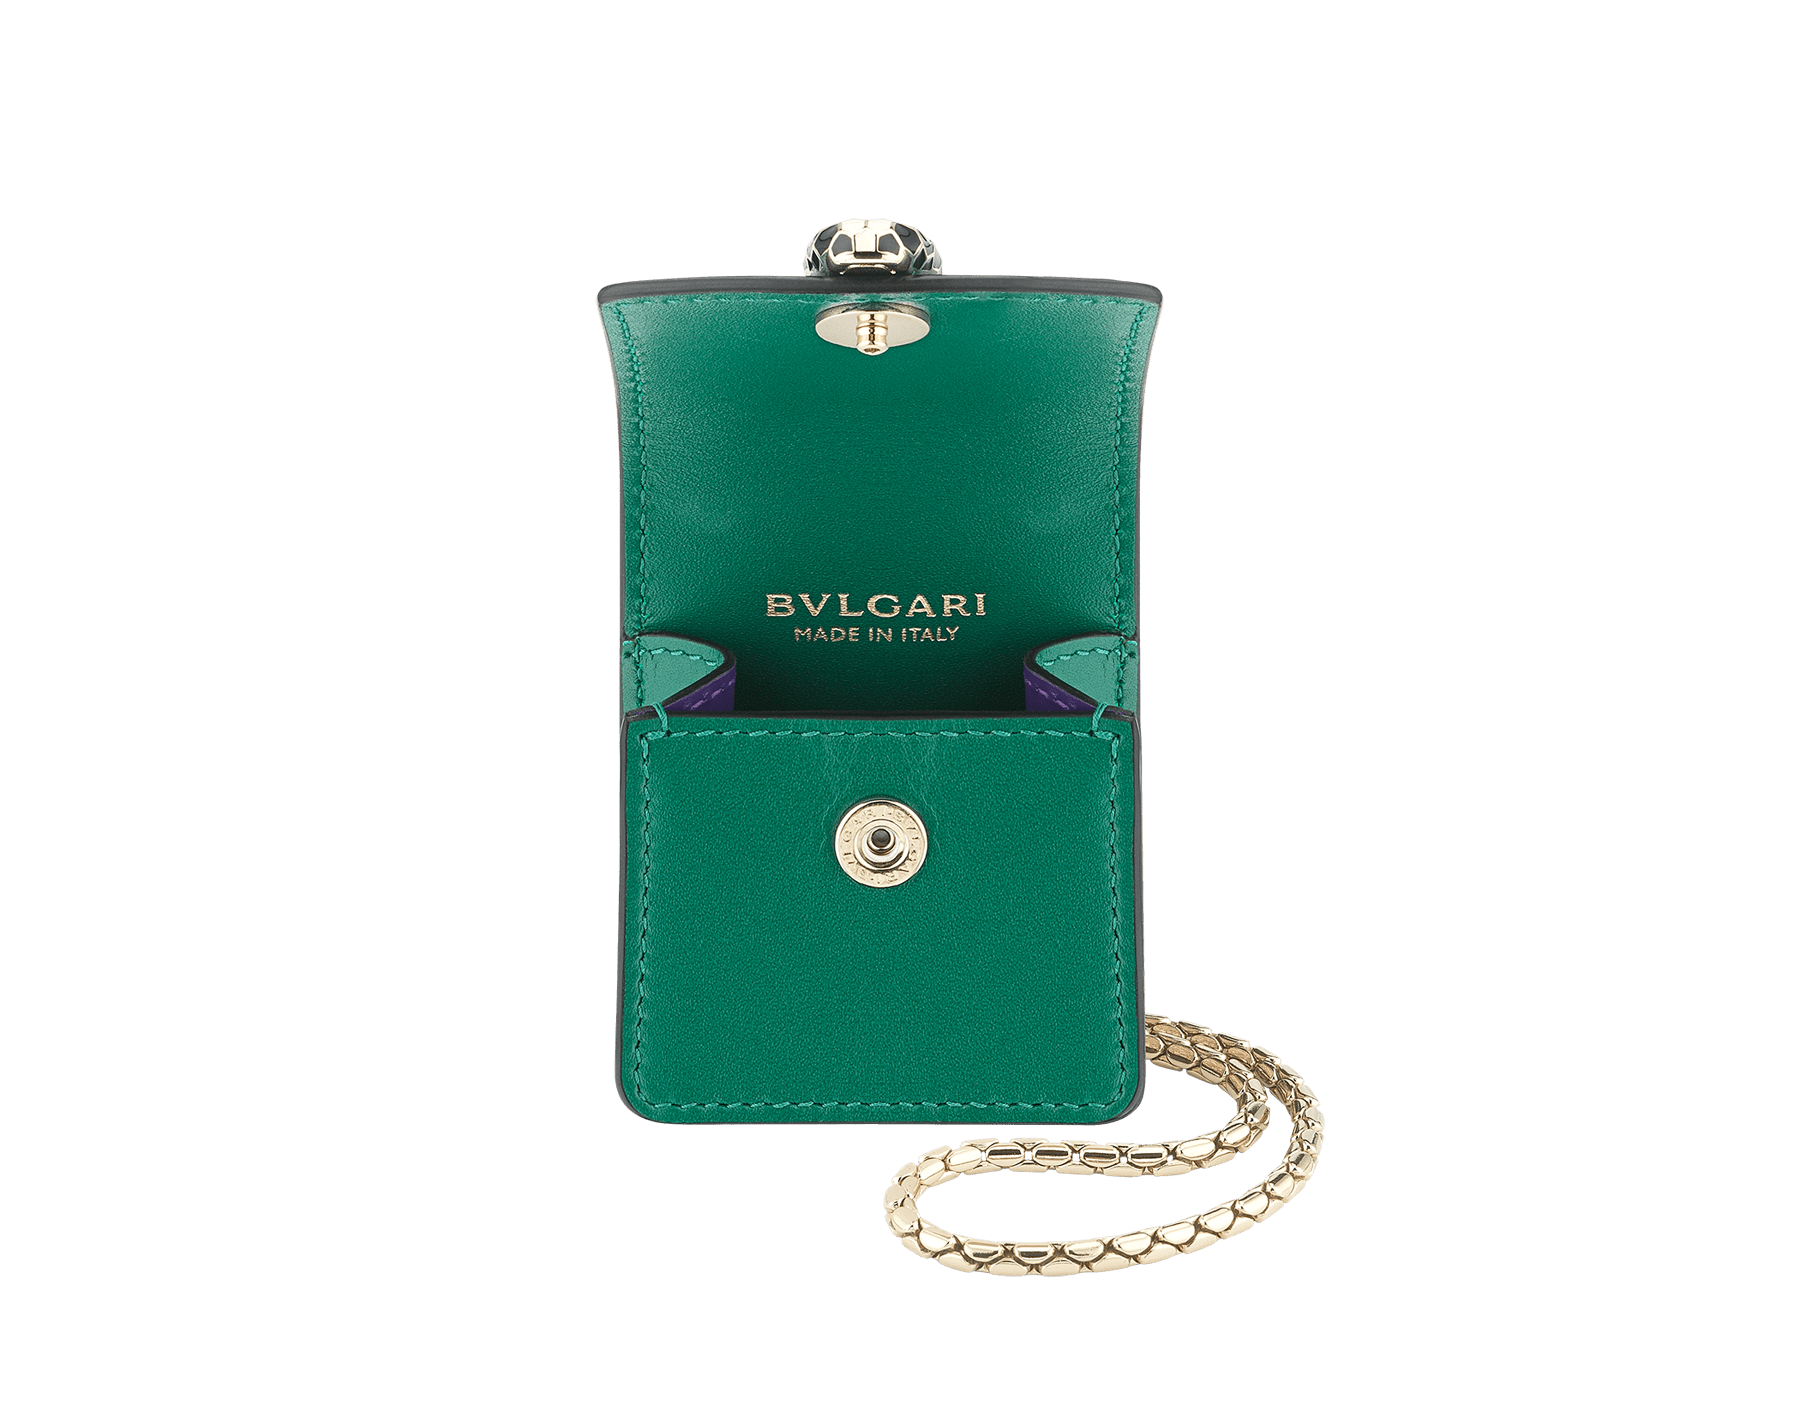 Serpenti Forever Earbuds holder in emerald green calf leather. Light gold plated brass Serpenti head closure in black and white enamel, with green enamel eyes. 289095 image 2